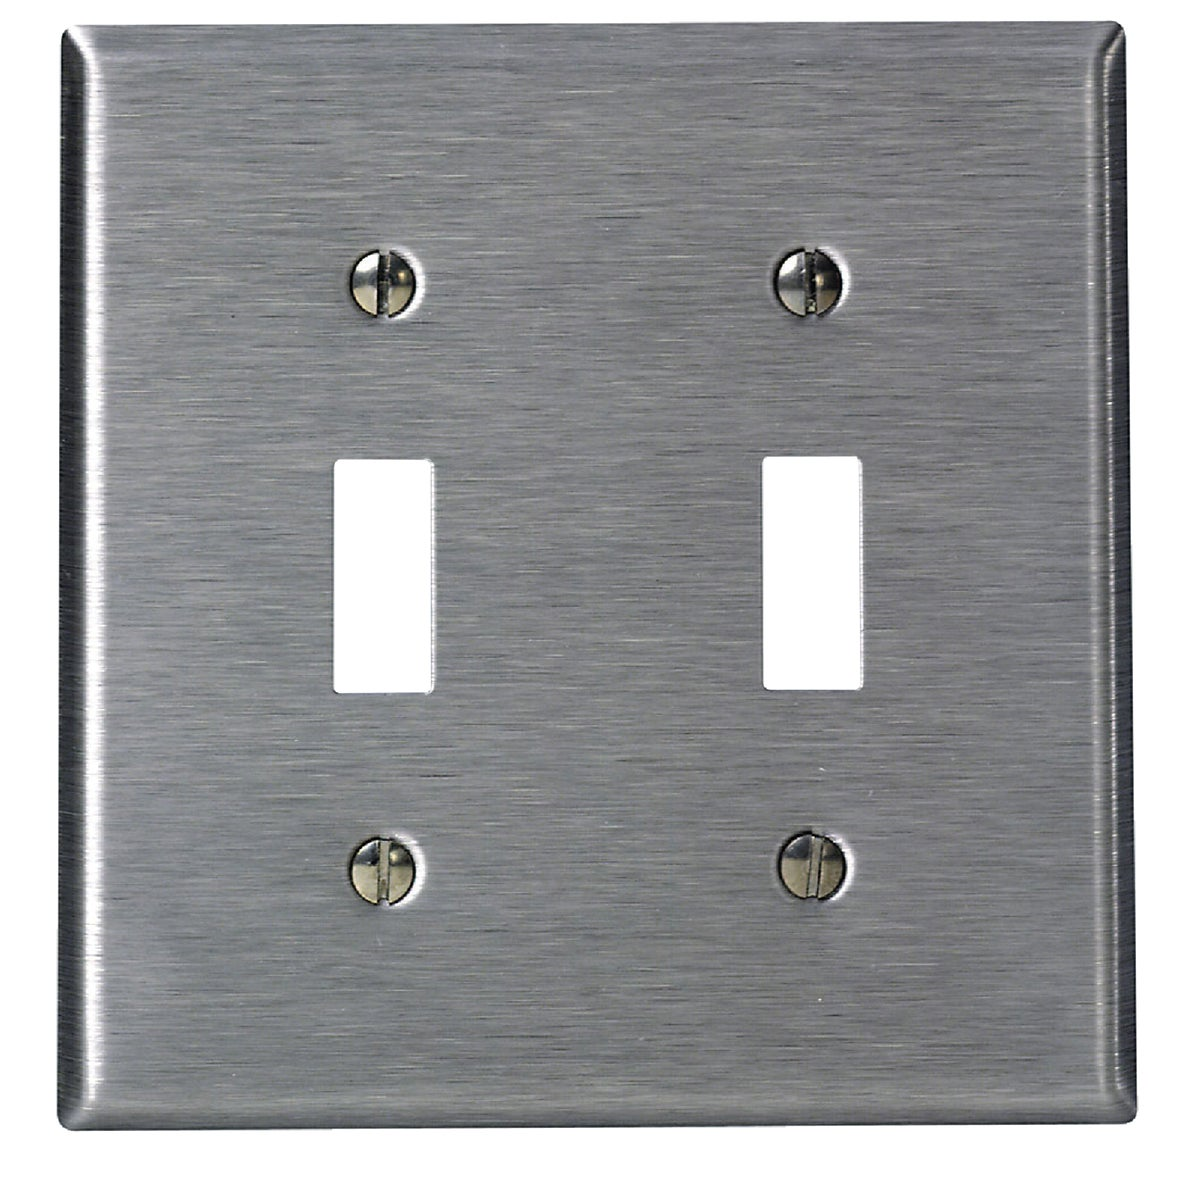 SS 2-TOGGLE WALL PLATE - 84009 by Leviton Mfg Co